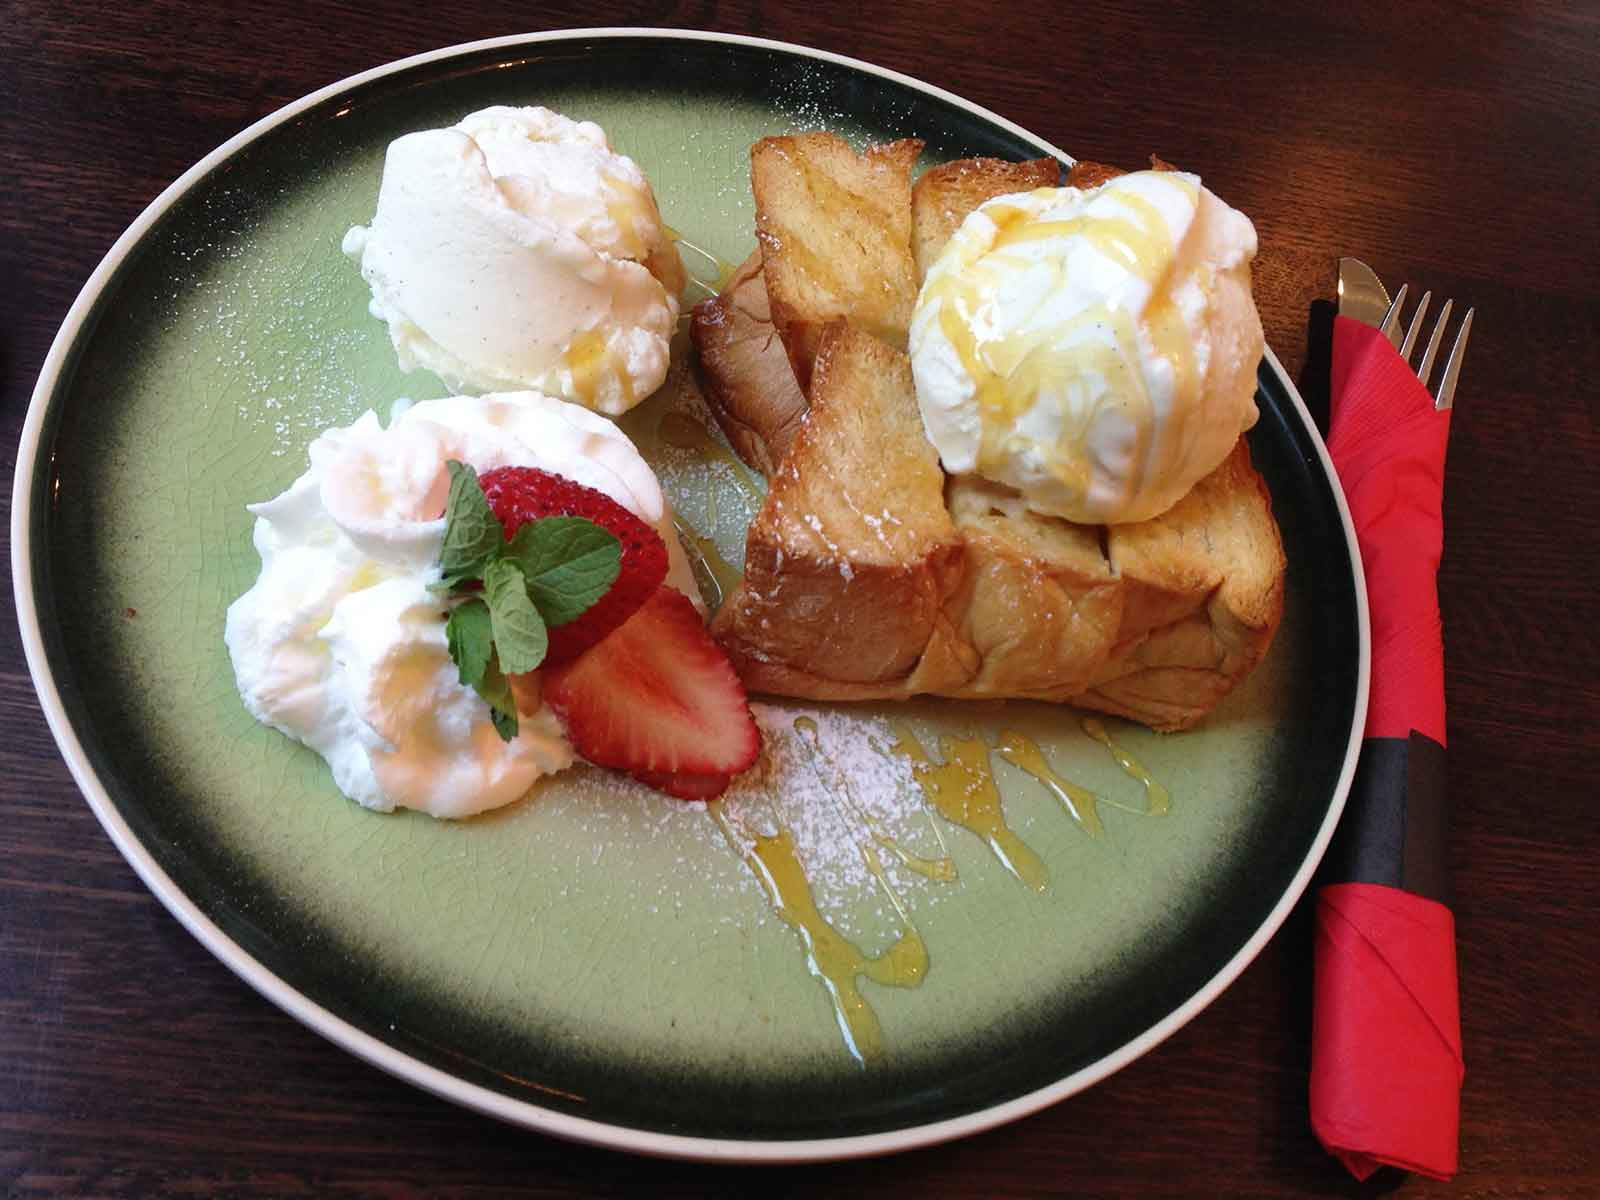 Honey toast with Vanilla Ice Cream